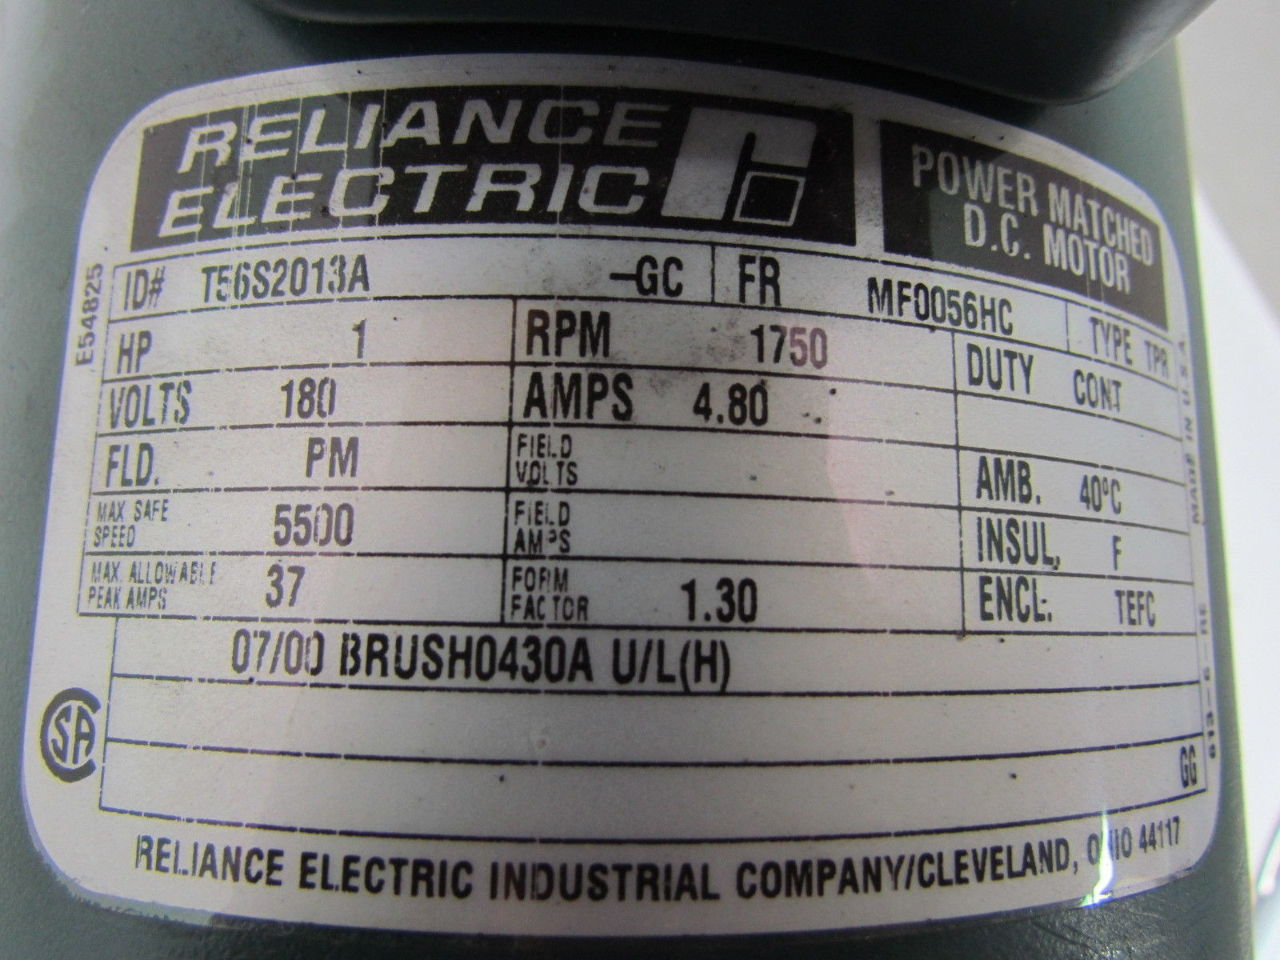 Reliance electric 1 hp 1750rpm 180v 56 frame tefc power for Reliance dc motor frame size chart